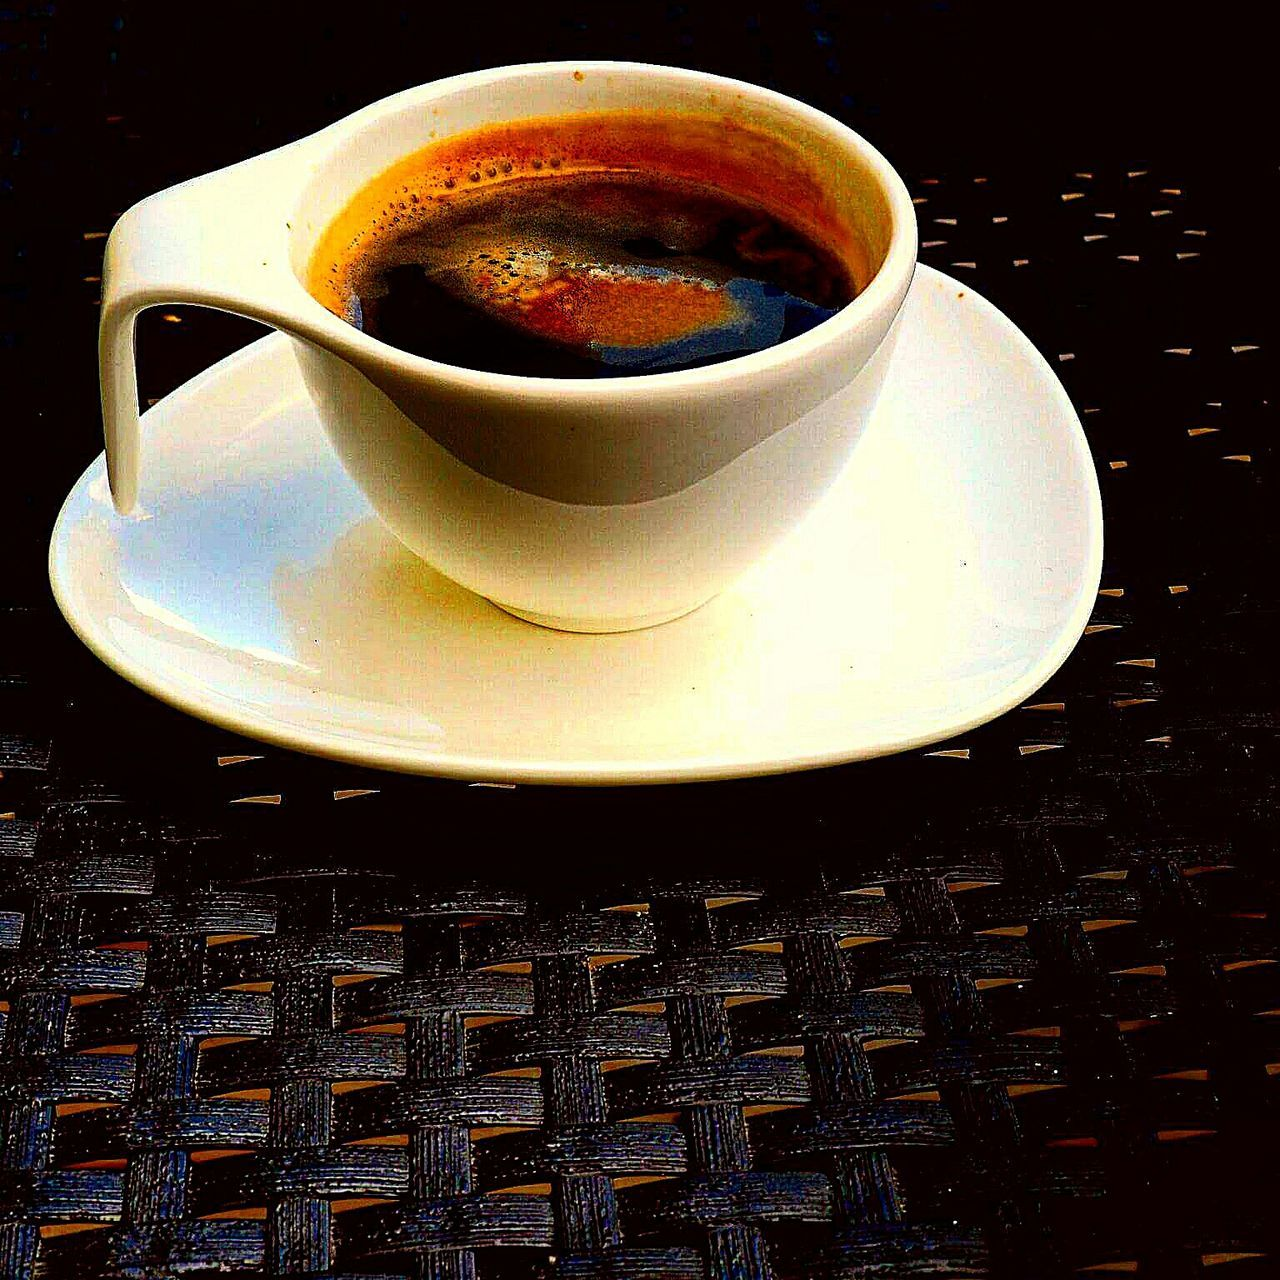 Coffee Coffee Time Coffee Break Coffe Coffee ☕ Coffeetime Coffee At Home Coffee Cup Coffee - Drink Coffeelover Coffeeaddict CoffeTime Coffe Time Coffeebreak Coffeeporn Black Table White Cup Kaffe Coffee Mug Coffee Culture Sweden Sweden ❤️ Relaxing Enjoying Life Still Life